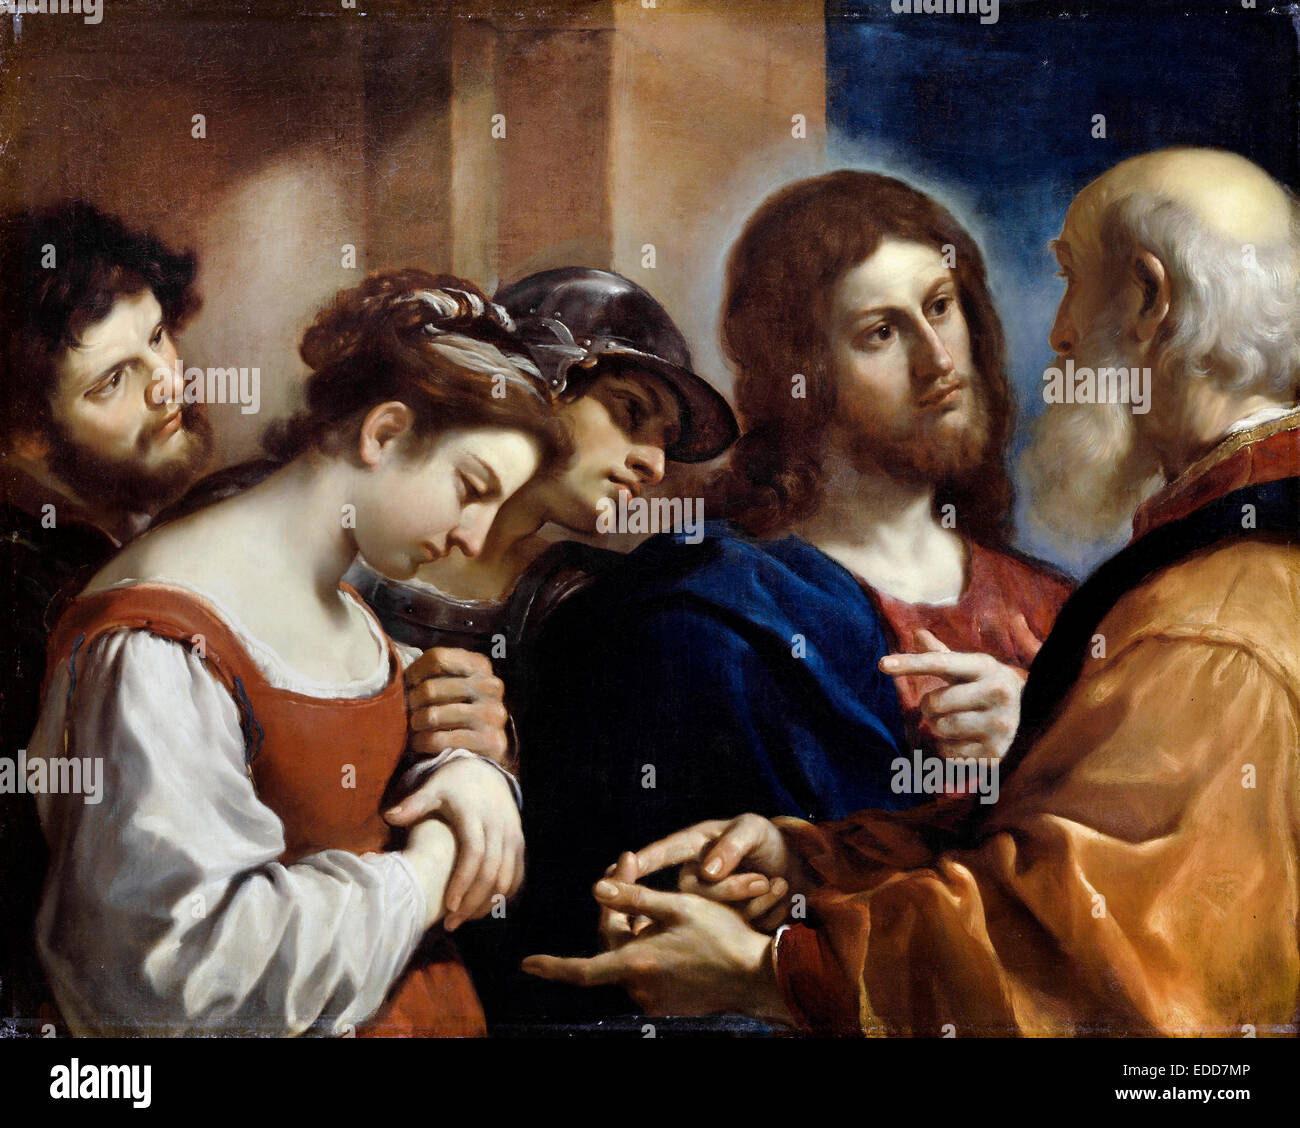 Guercino, The Woman Taken in Adultery. Circa 1621. Oil on canvas. Dulwich Picture Gallery, London, England. - Stock Image